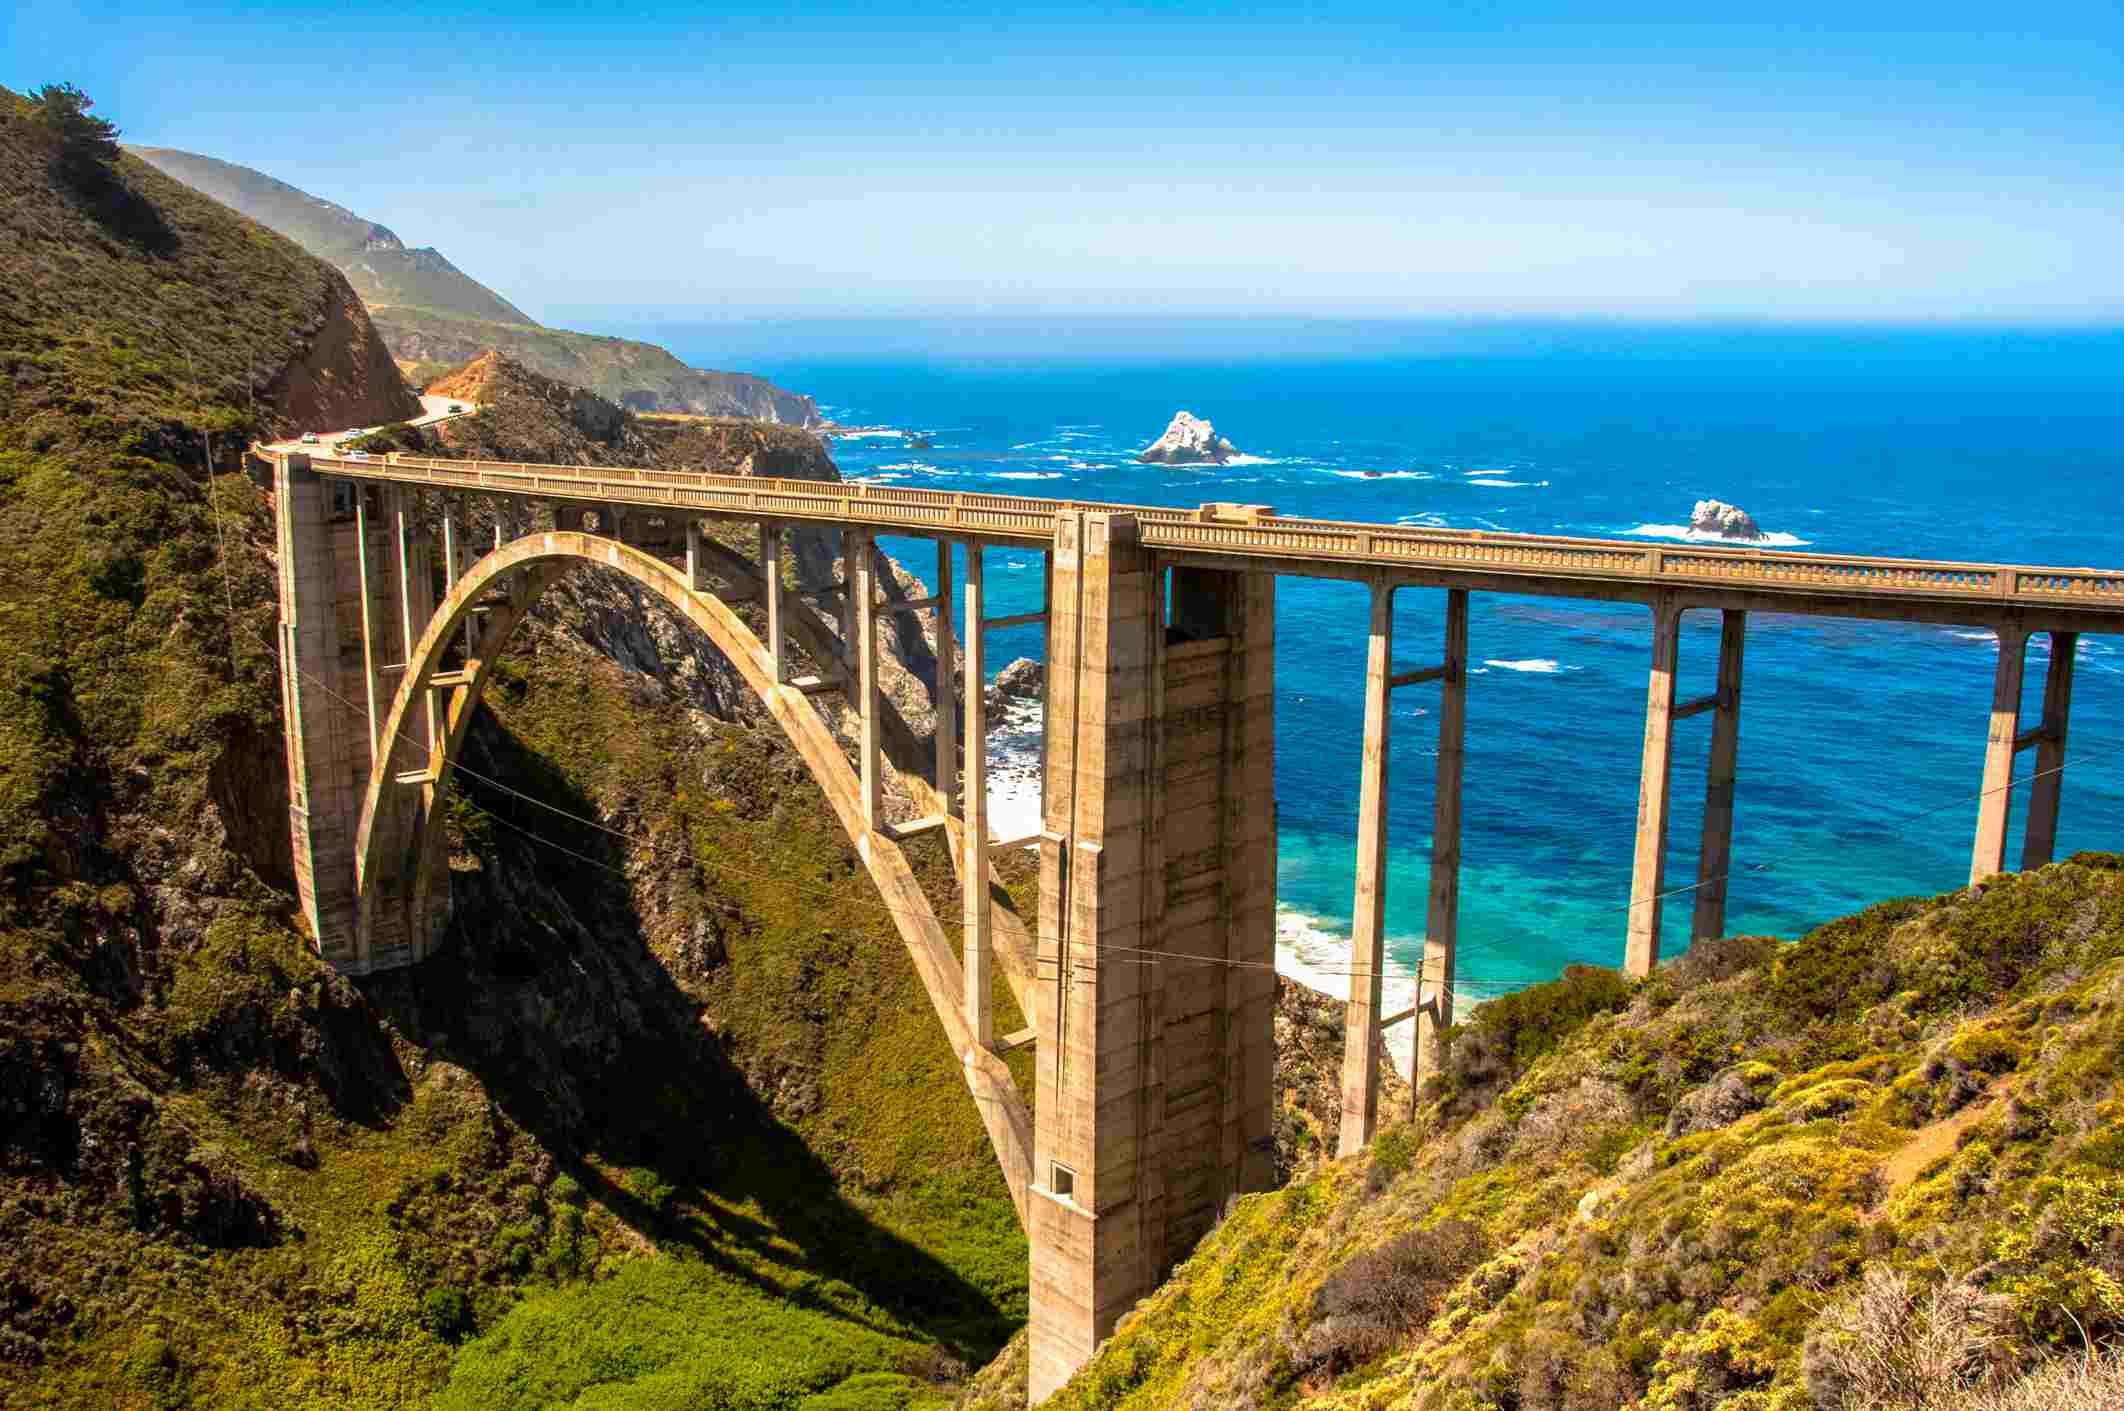 Pacific Coast Highway - from San Francisco to San Diego